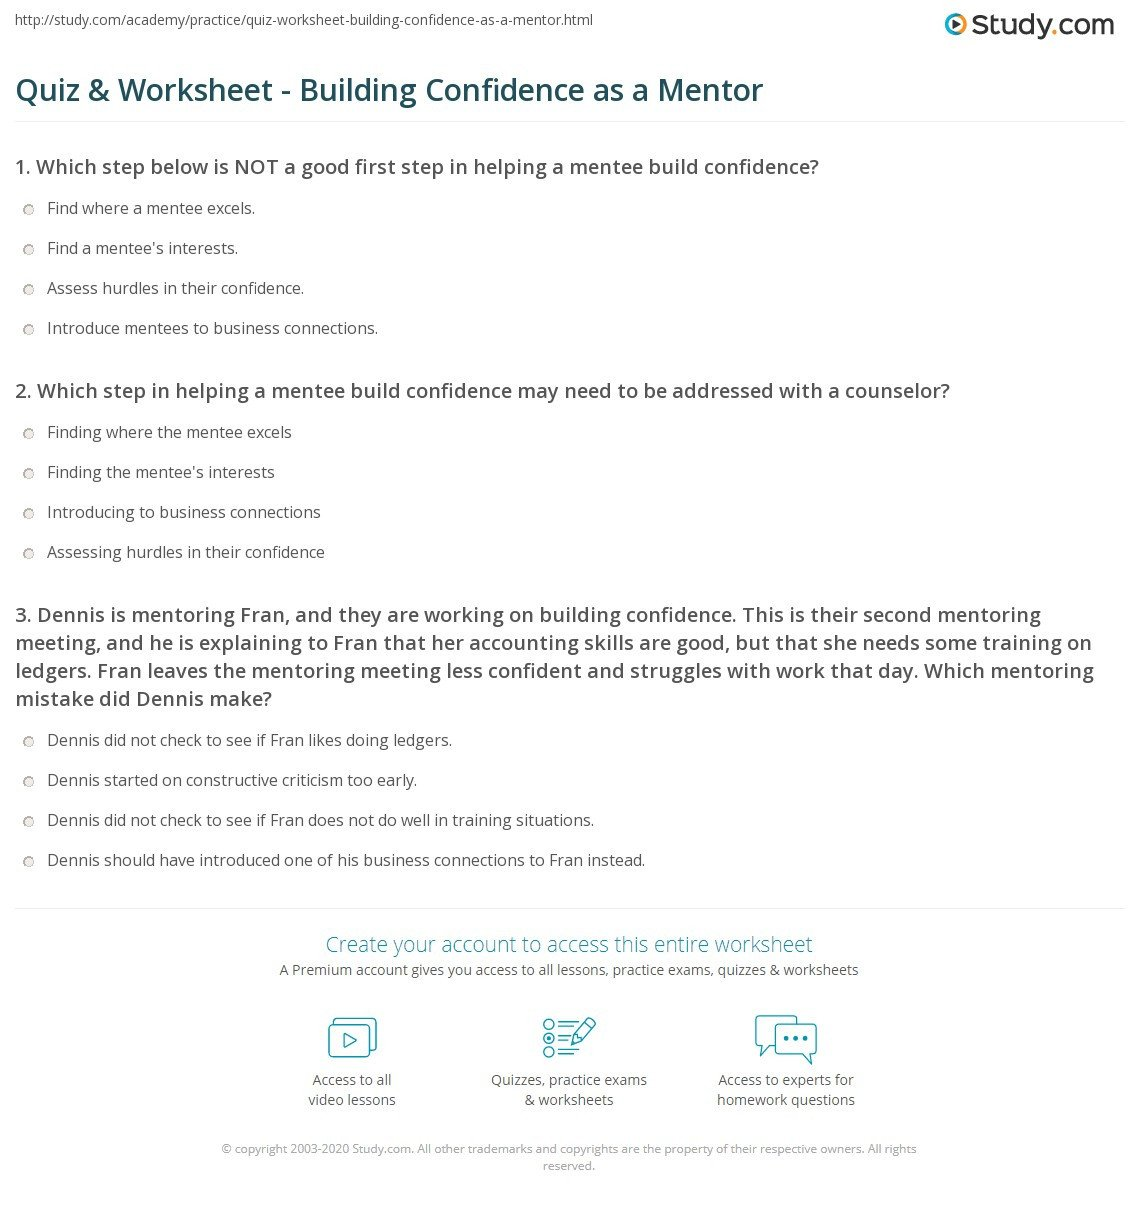 Confidence Building Worksheets Quiz & Worksheet Building Confidence as A Mentor